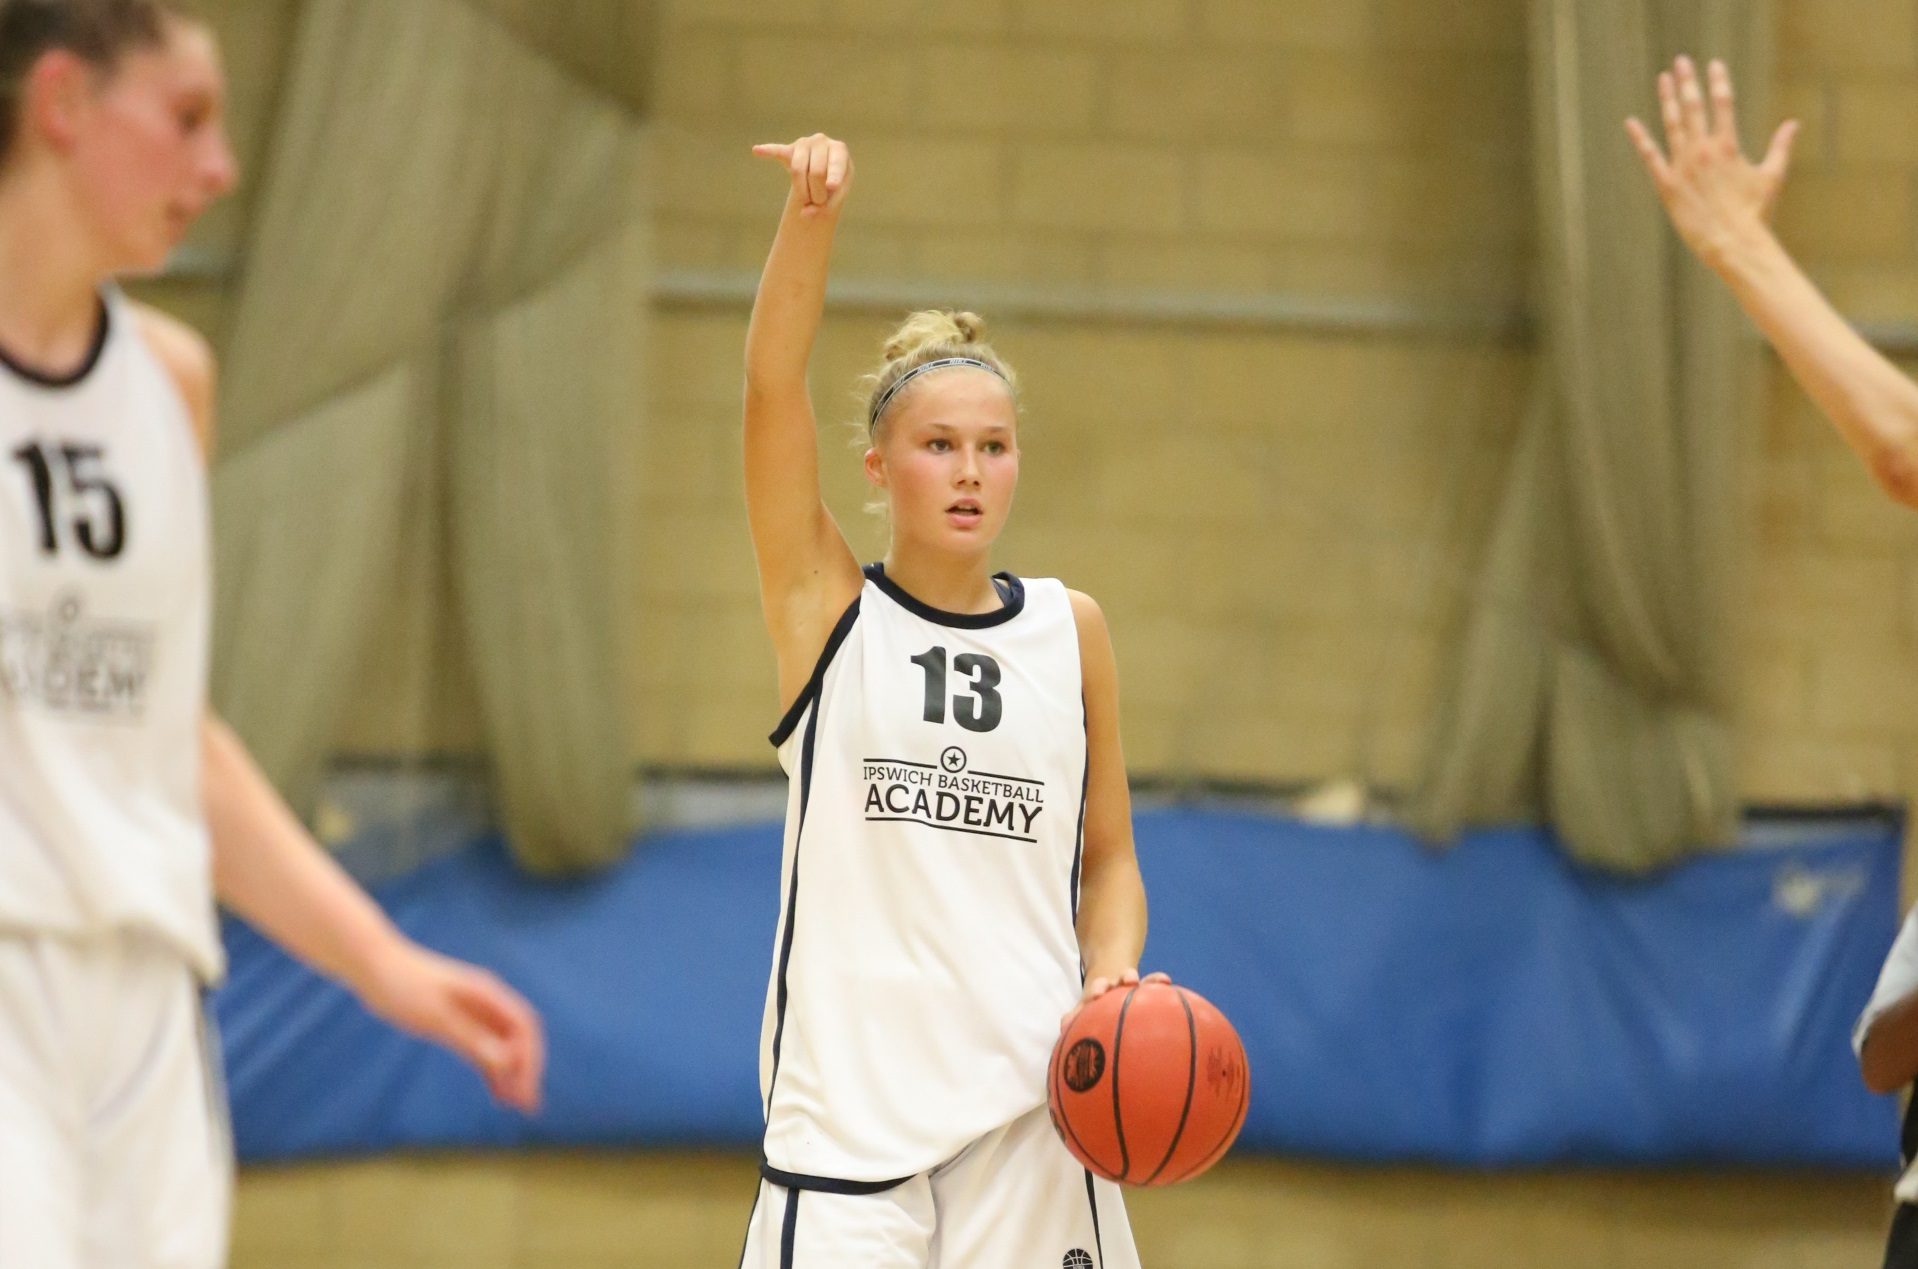 0a22f6b4383 Player of the Week: Esther Little - WEABL - Women's Elite Academy ...